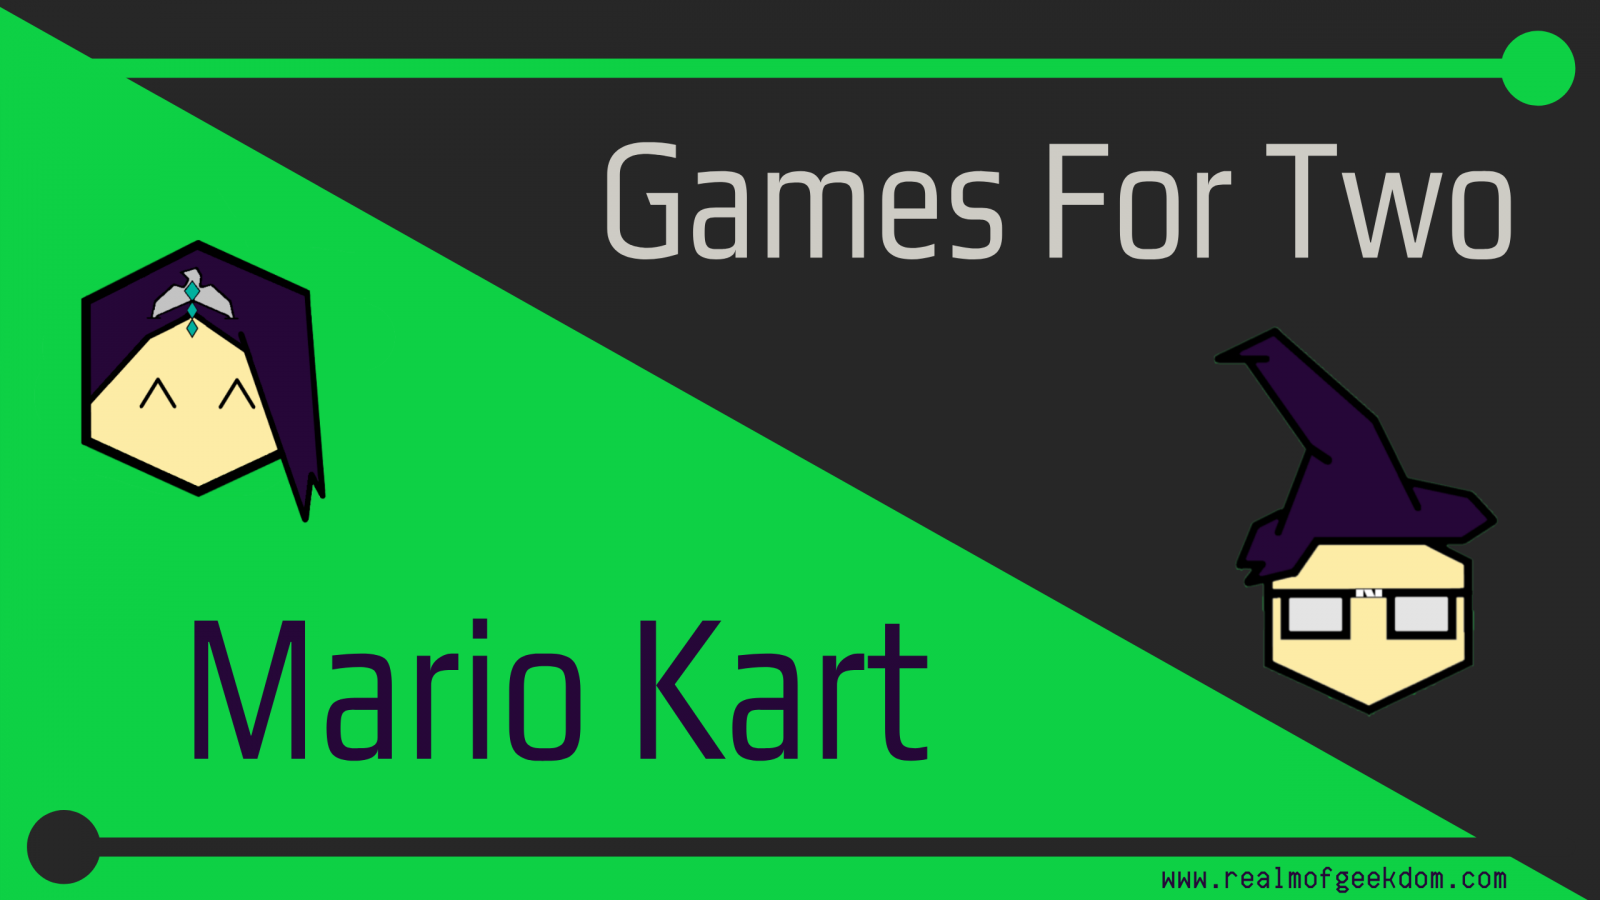 Games For Two Mario Kart Title Image